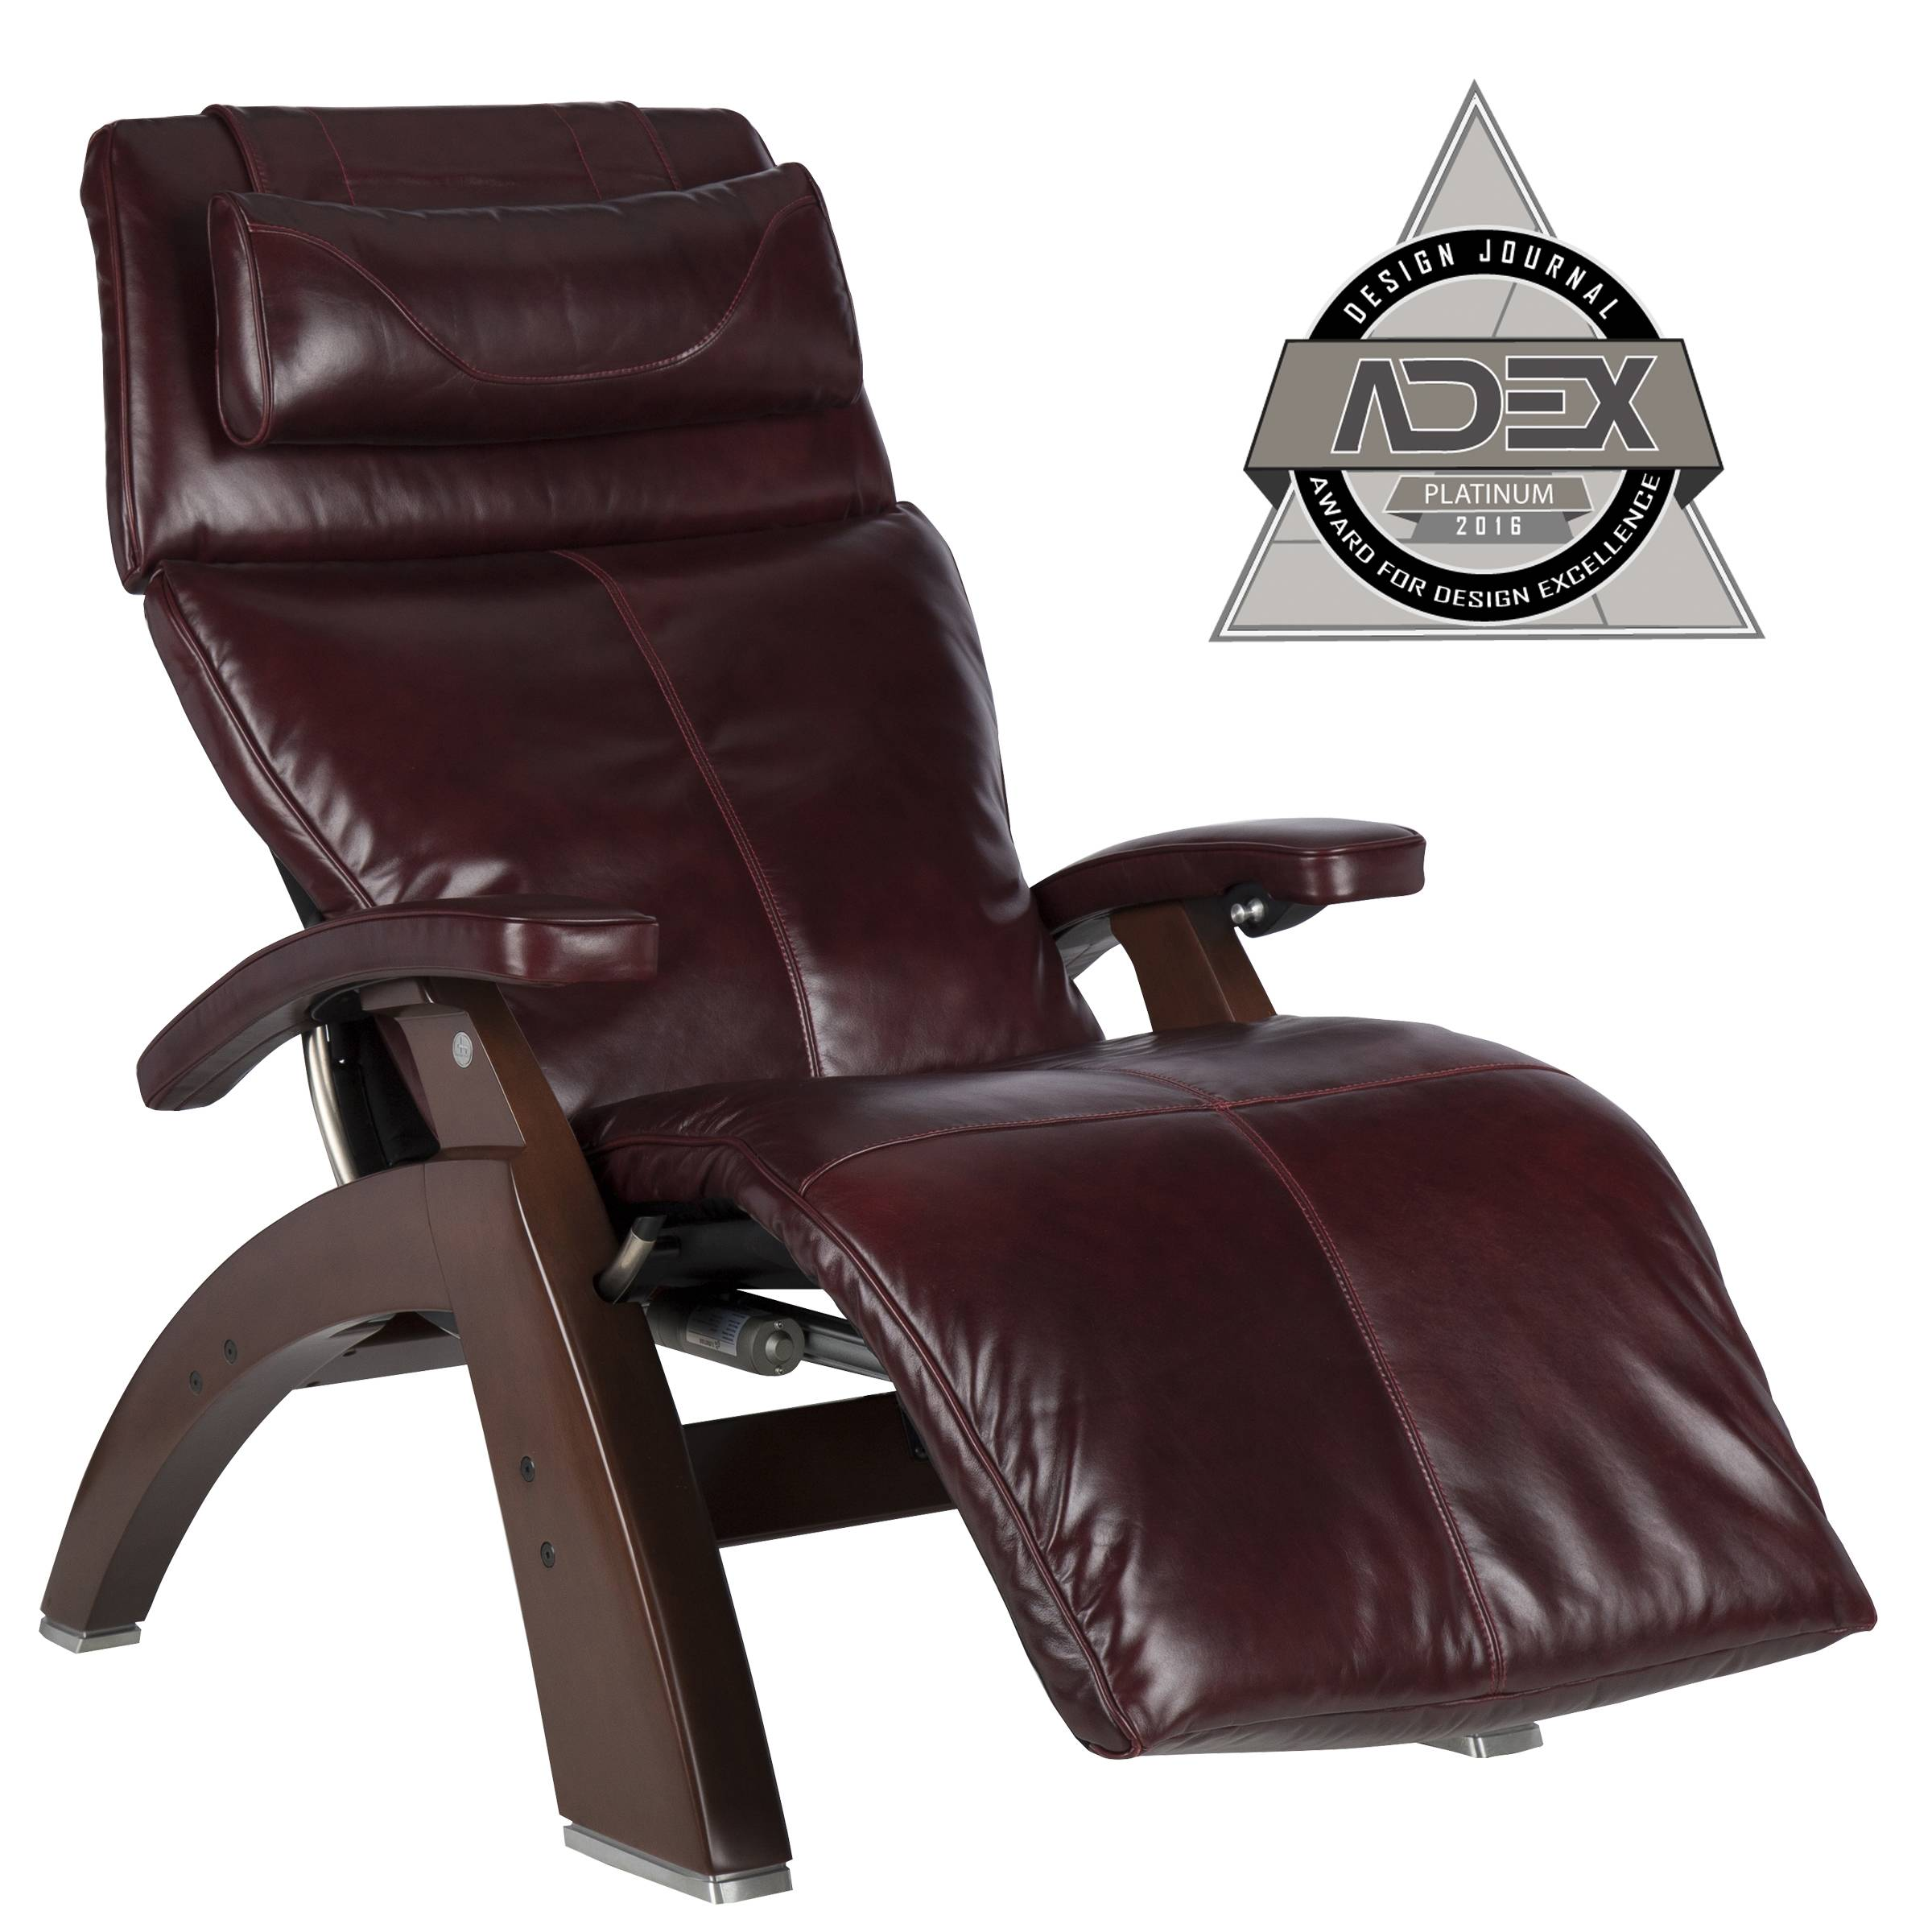 Perfect Chair PC-610